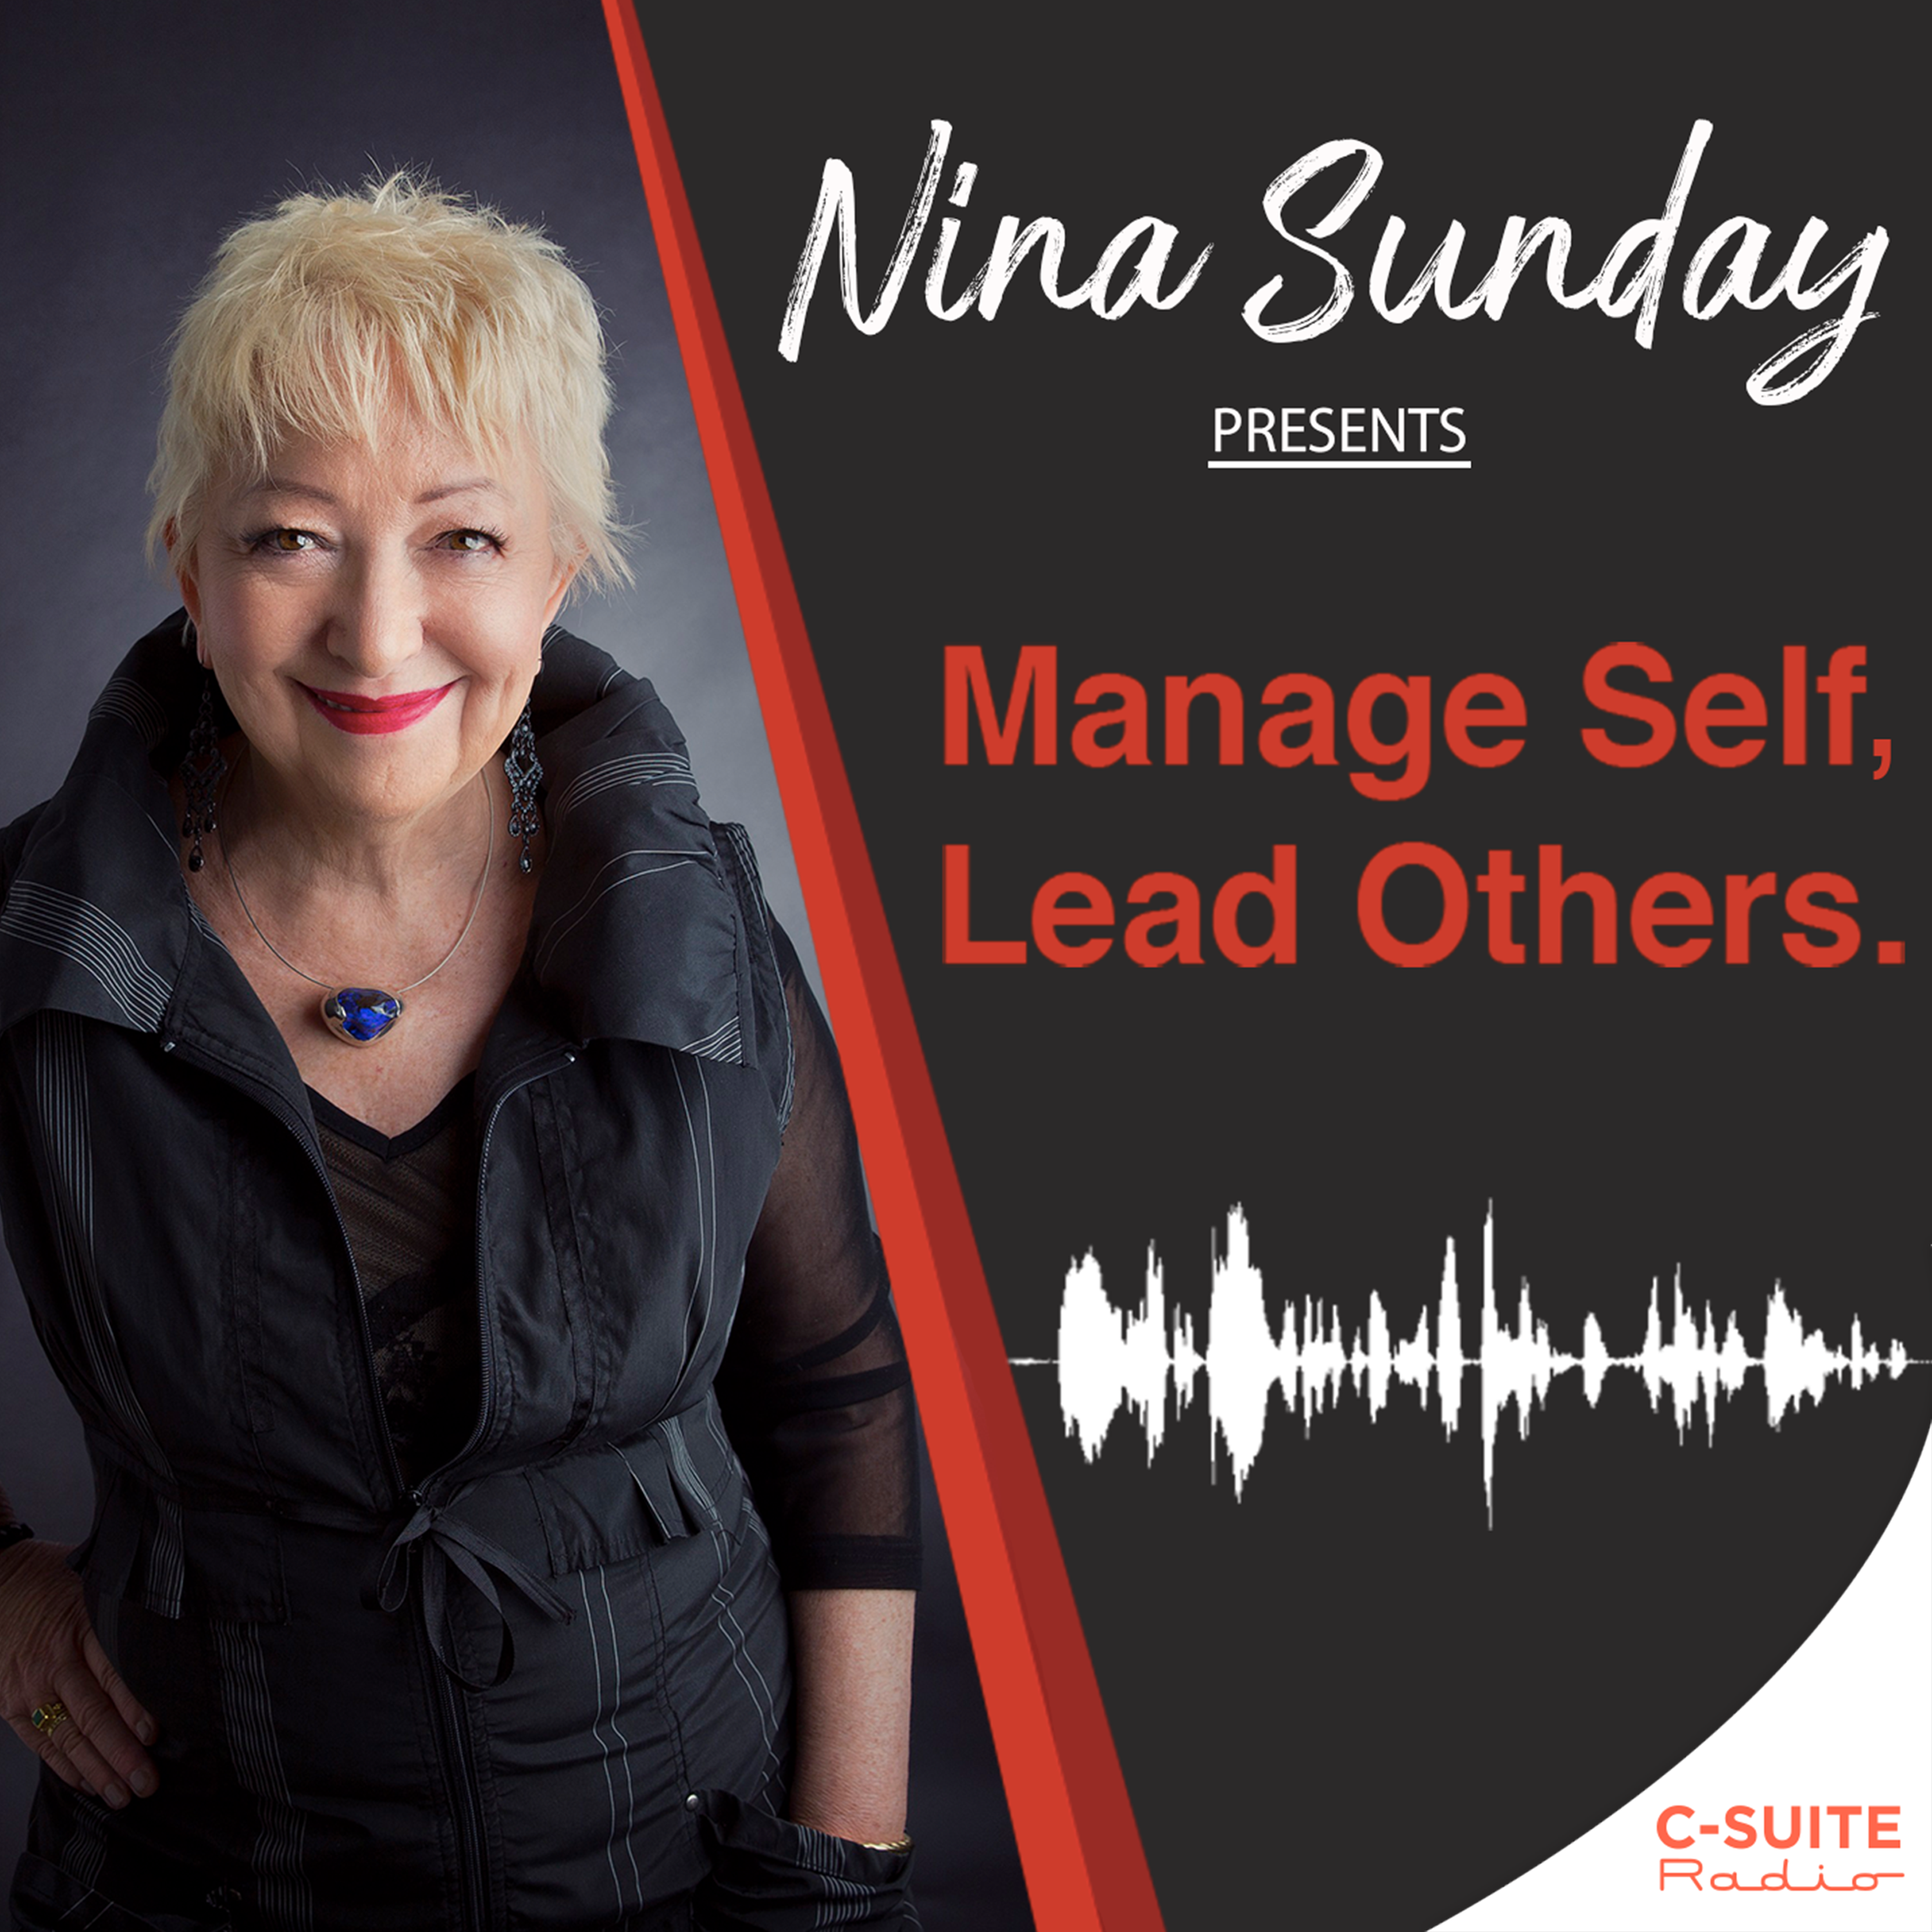 Nina Sunday presents, Manage Self, Lead Others.